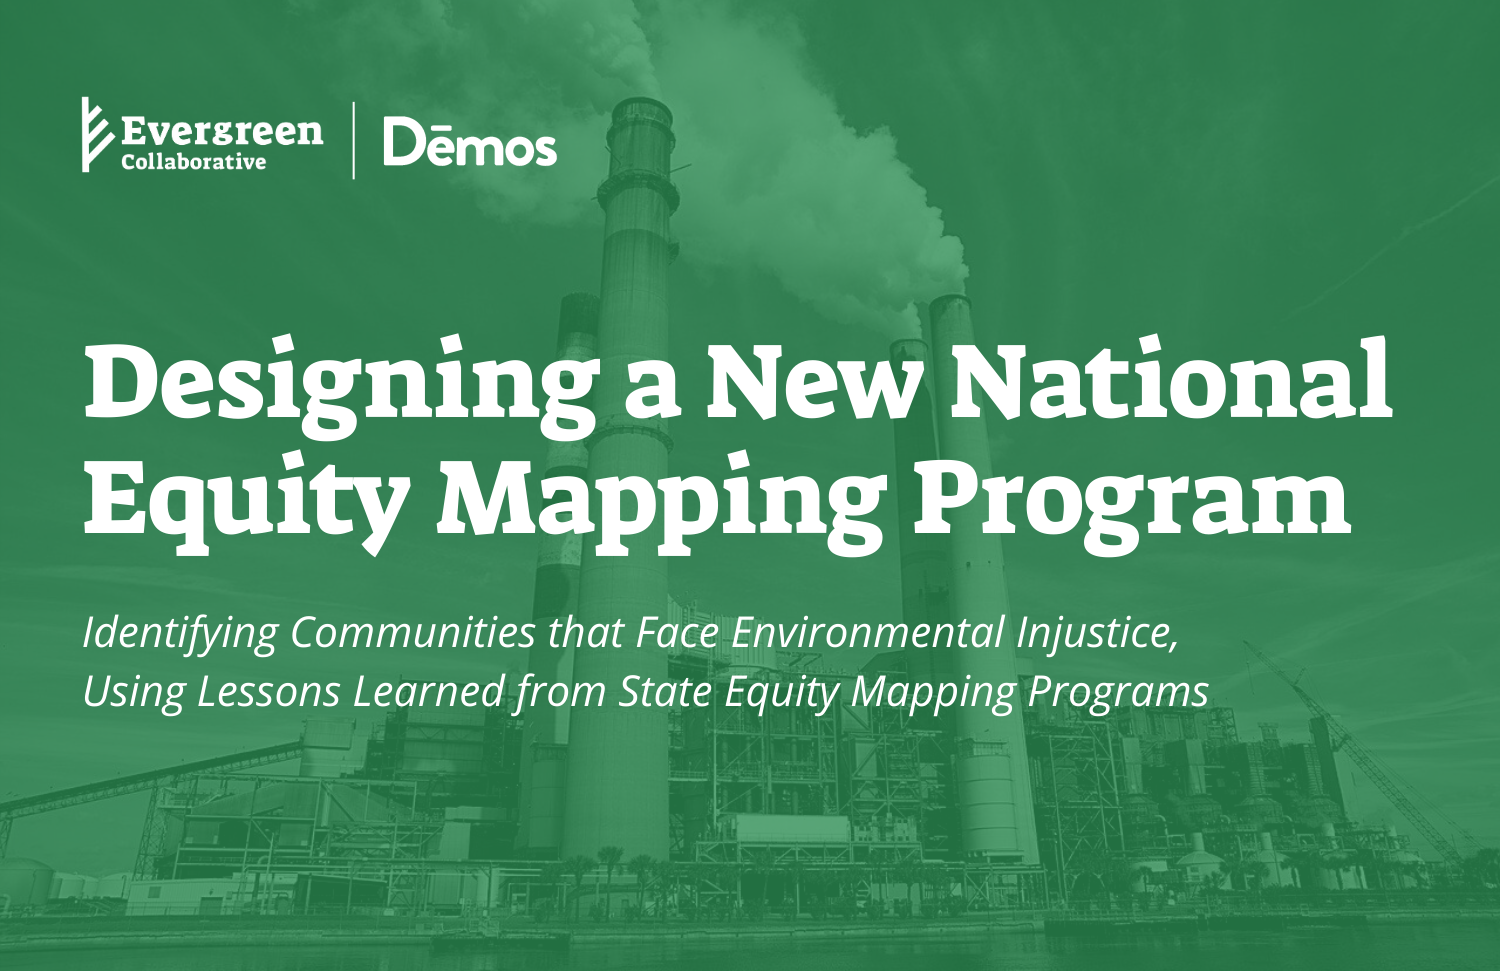 photo of Designing a New National Equity Mapping Program